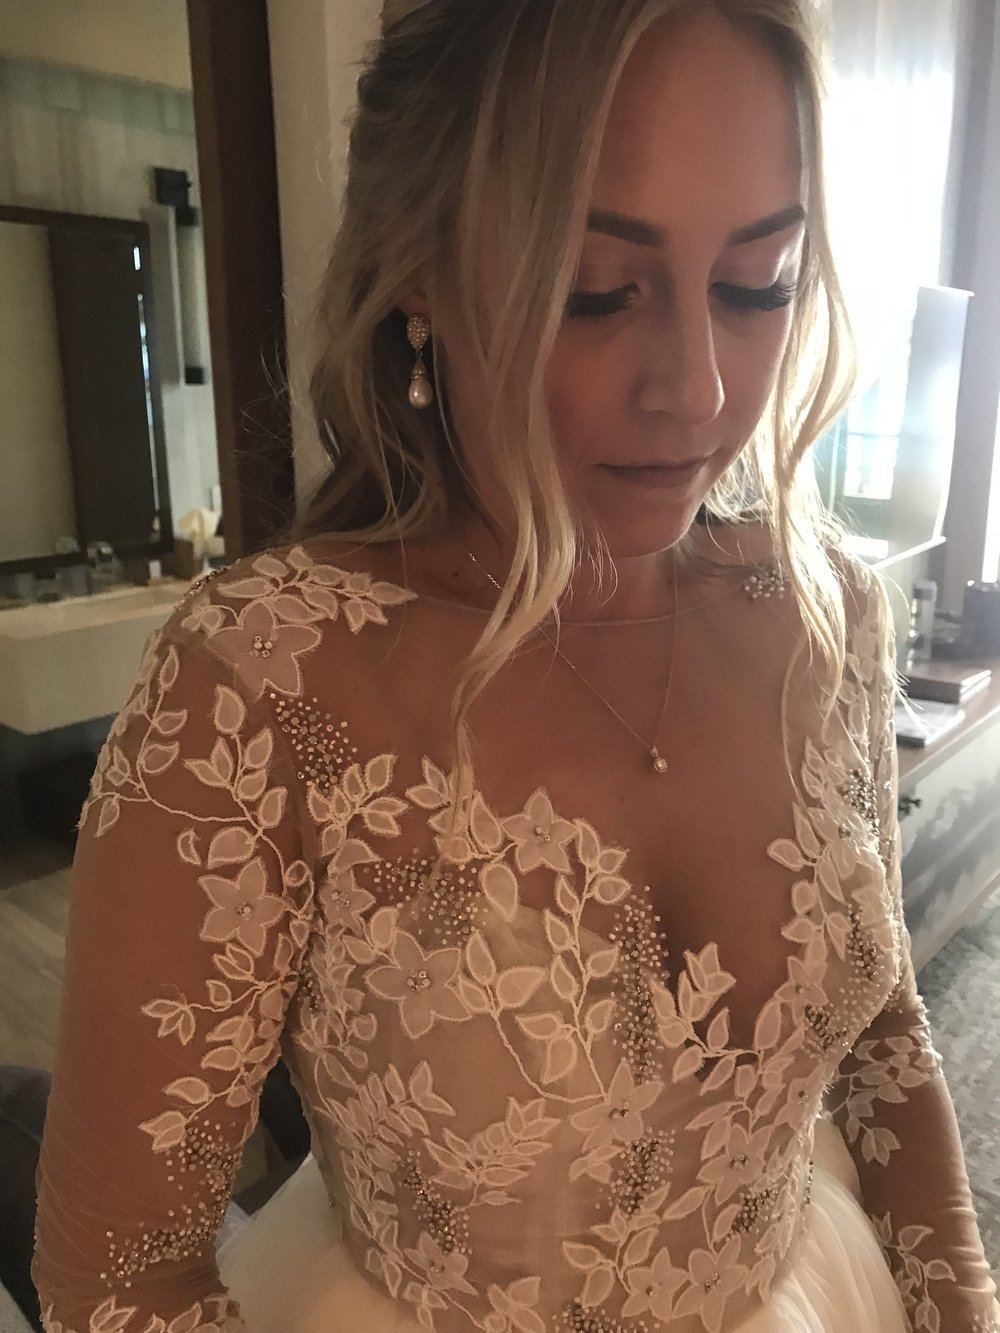 All in the details with my Lorelei Gown by Hayley Paige. The earrings were my mom's on her wedding day and the diamond on my necklace was from my grandma's ring.